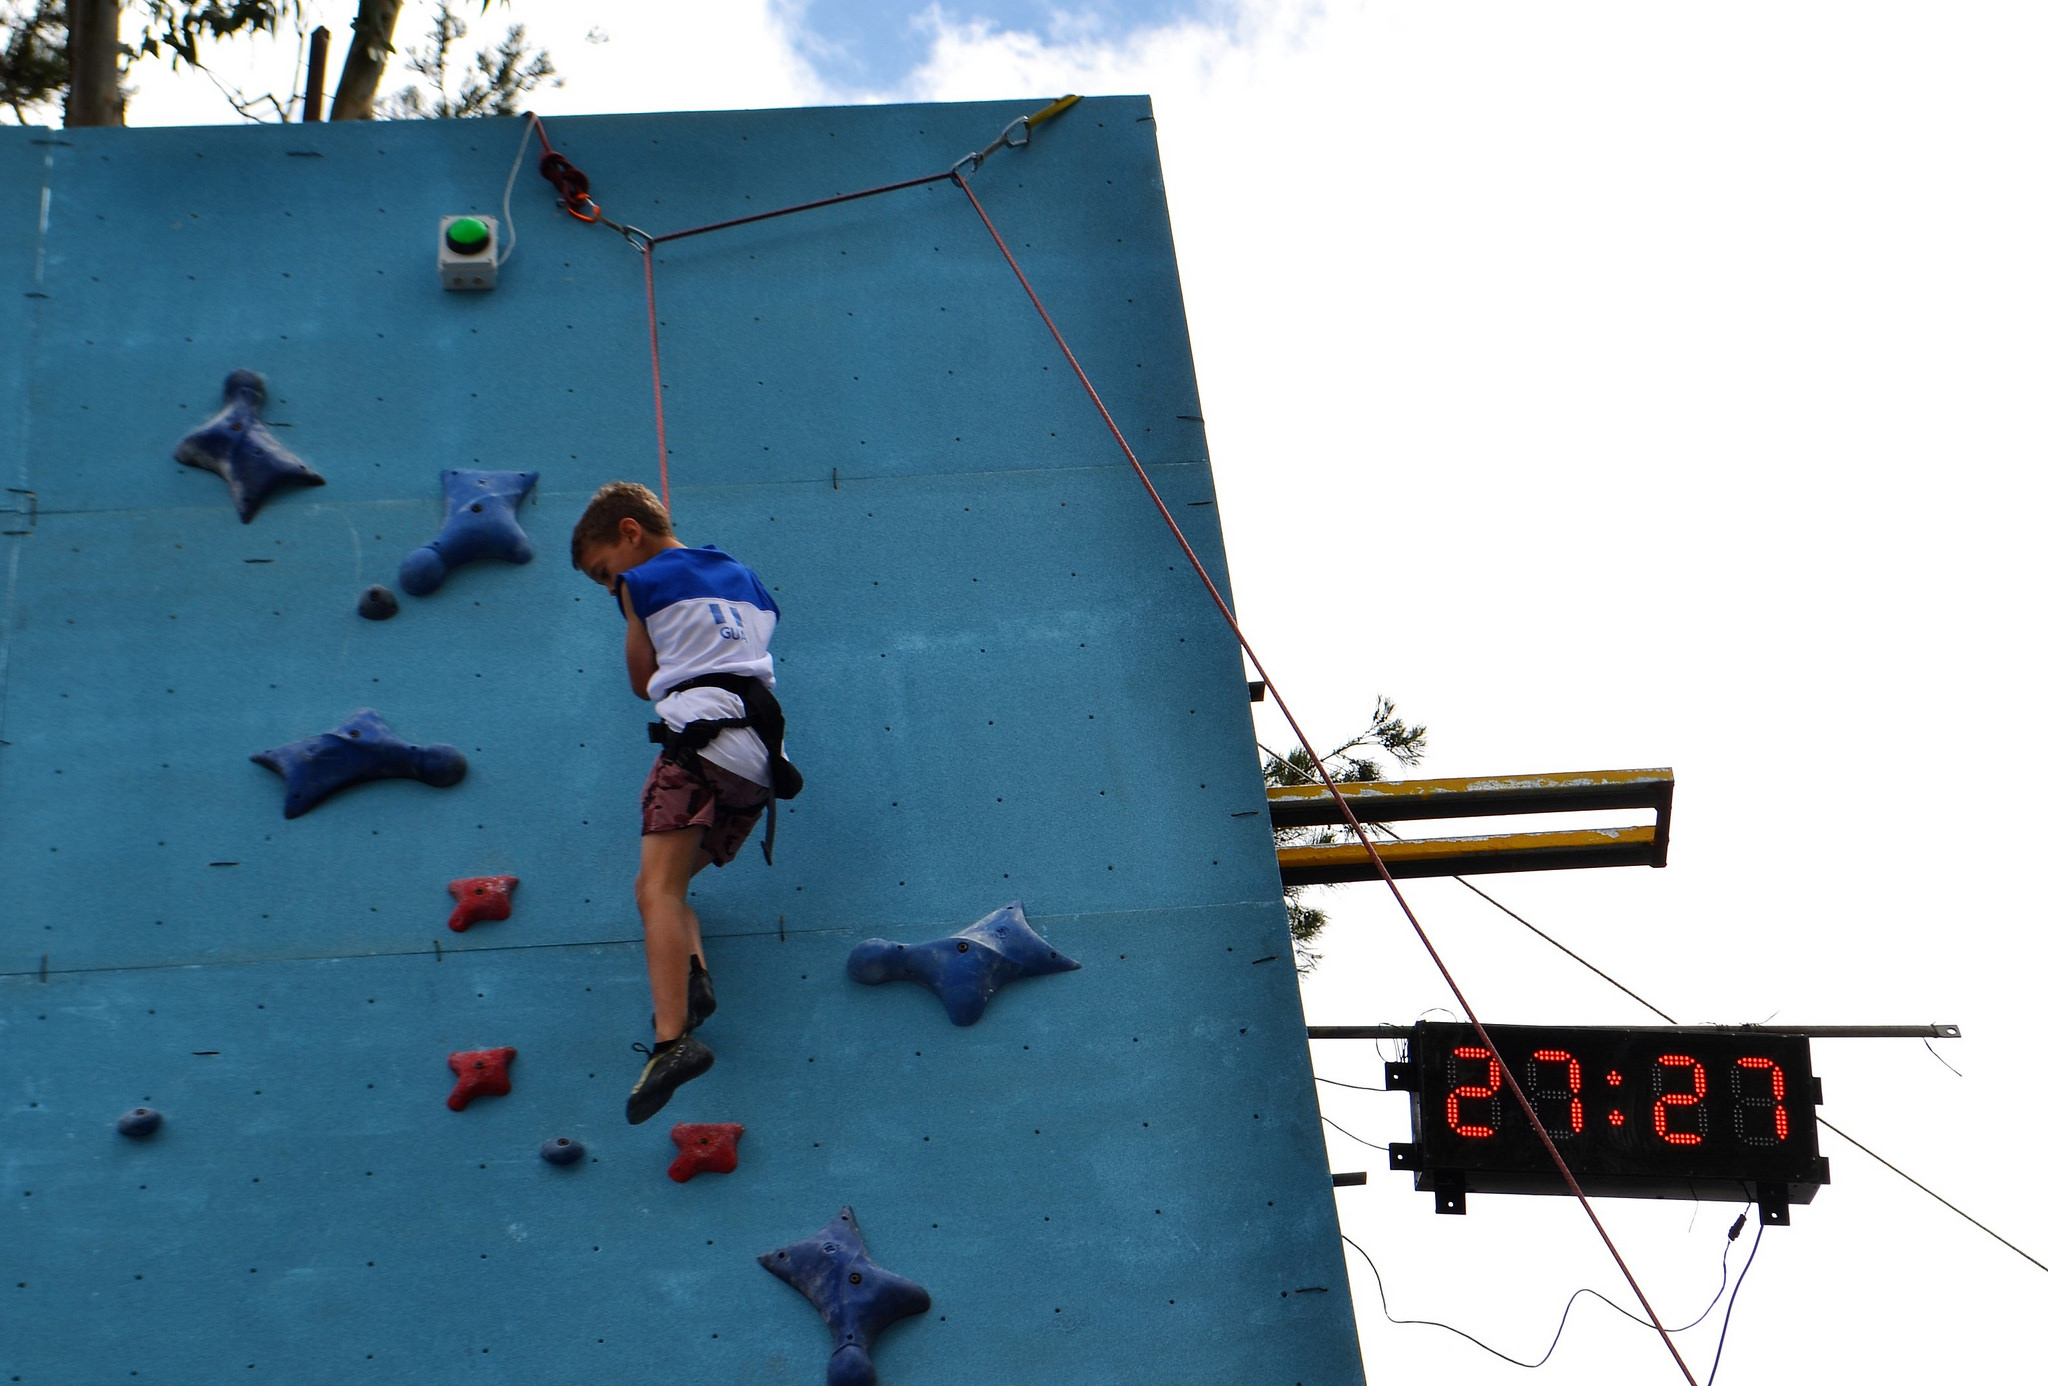 Competitive Rock Climbing with Kids: Speed Competition